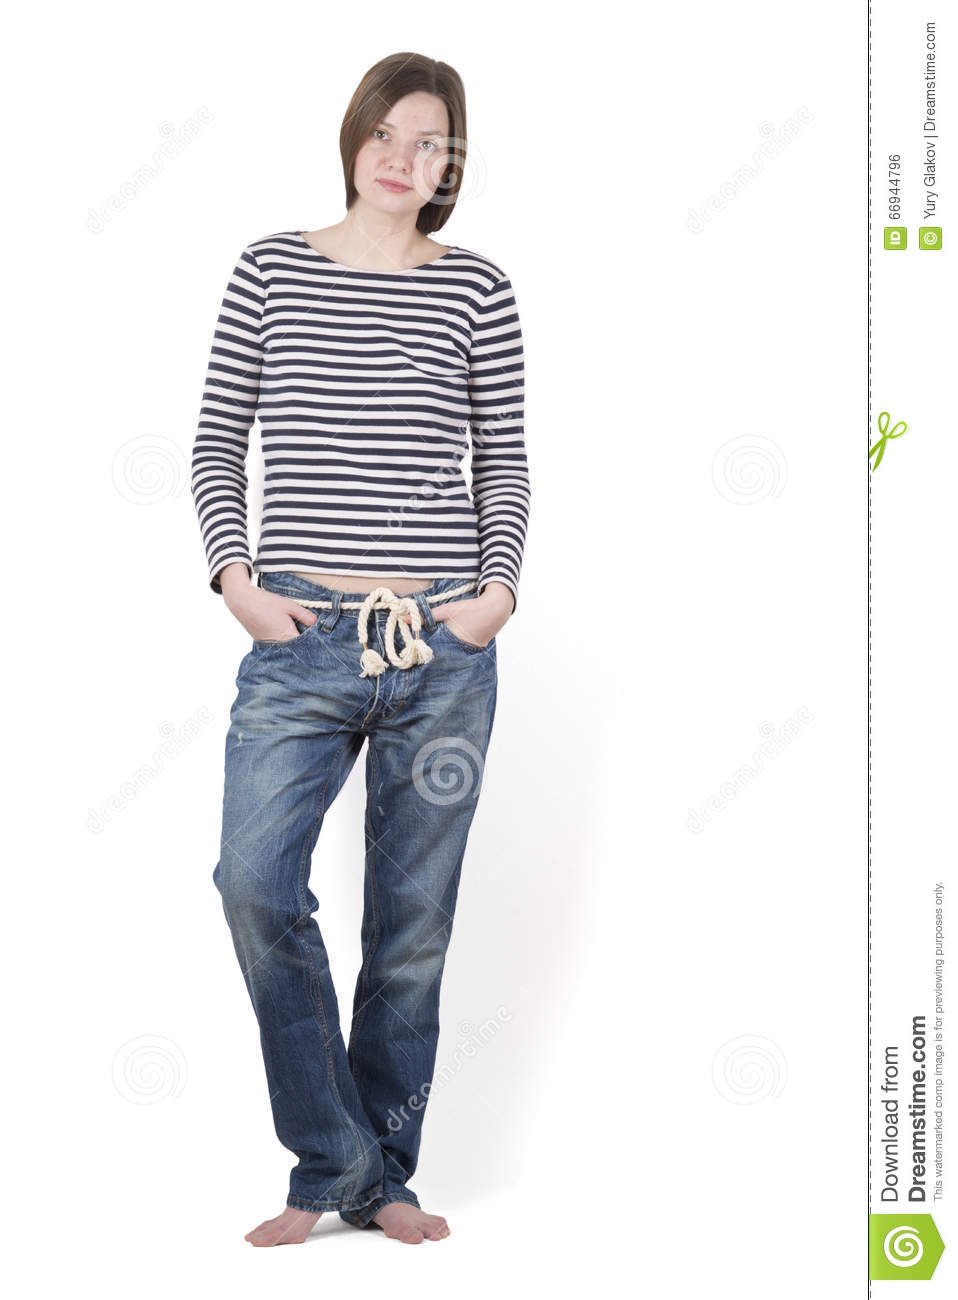 4199c531a99 Girl Brunette Standing Barefoot In A Striped Shirt And Blue Jeans ...